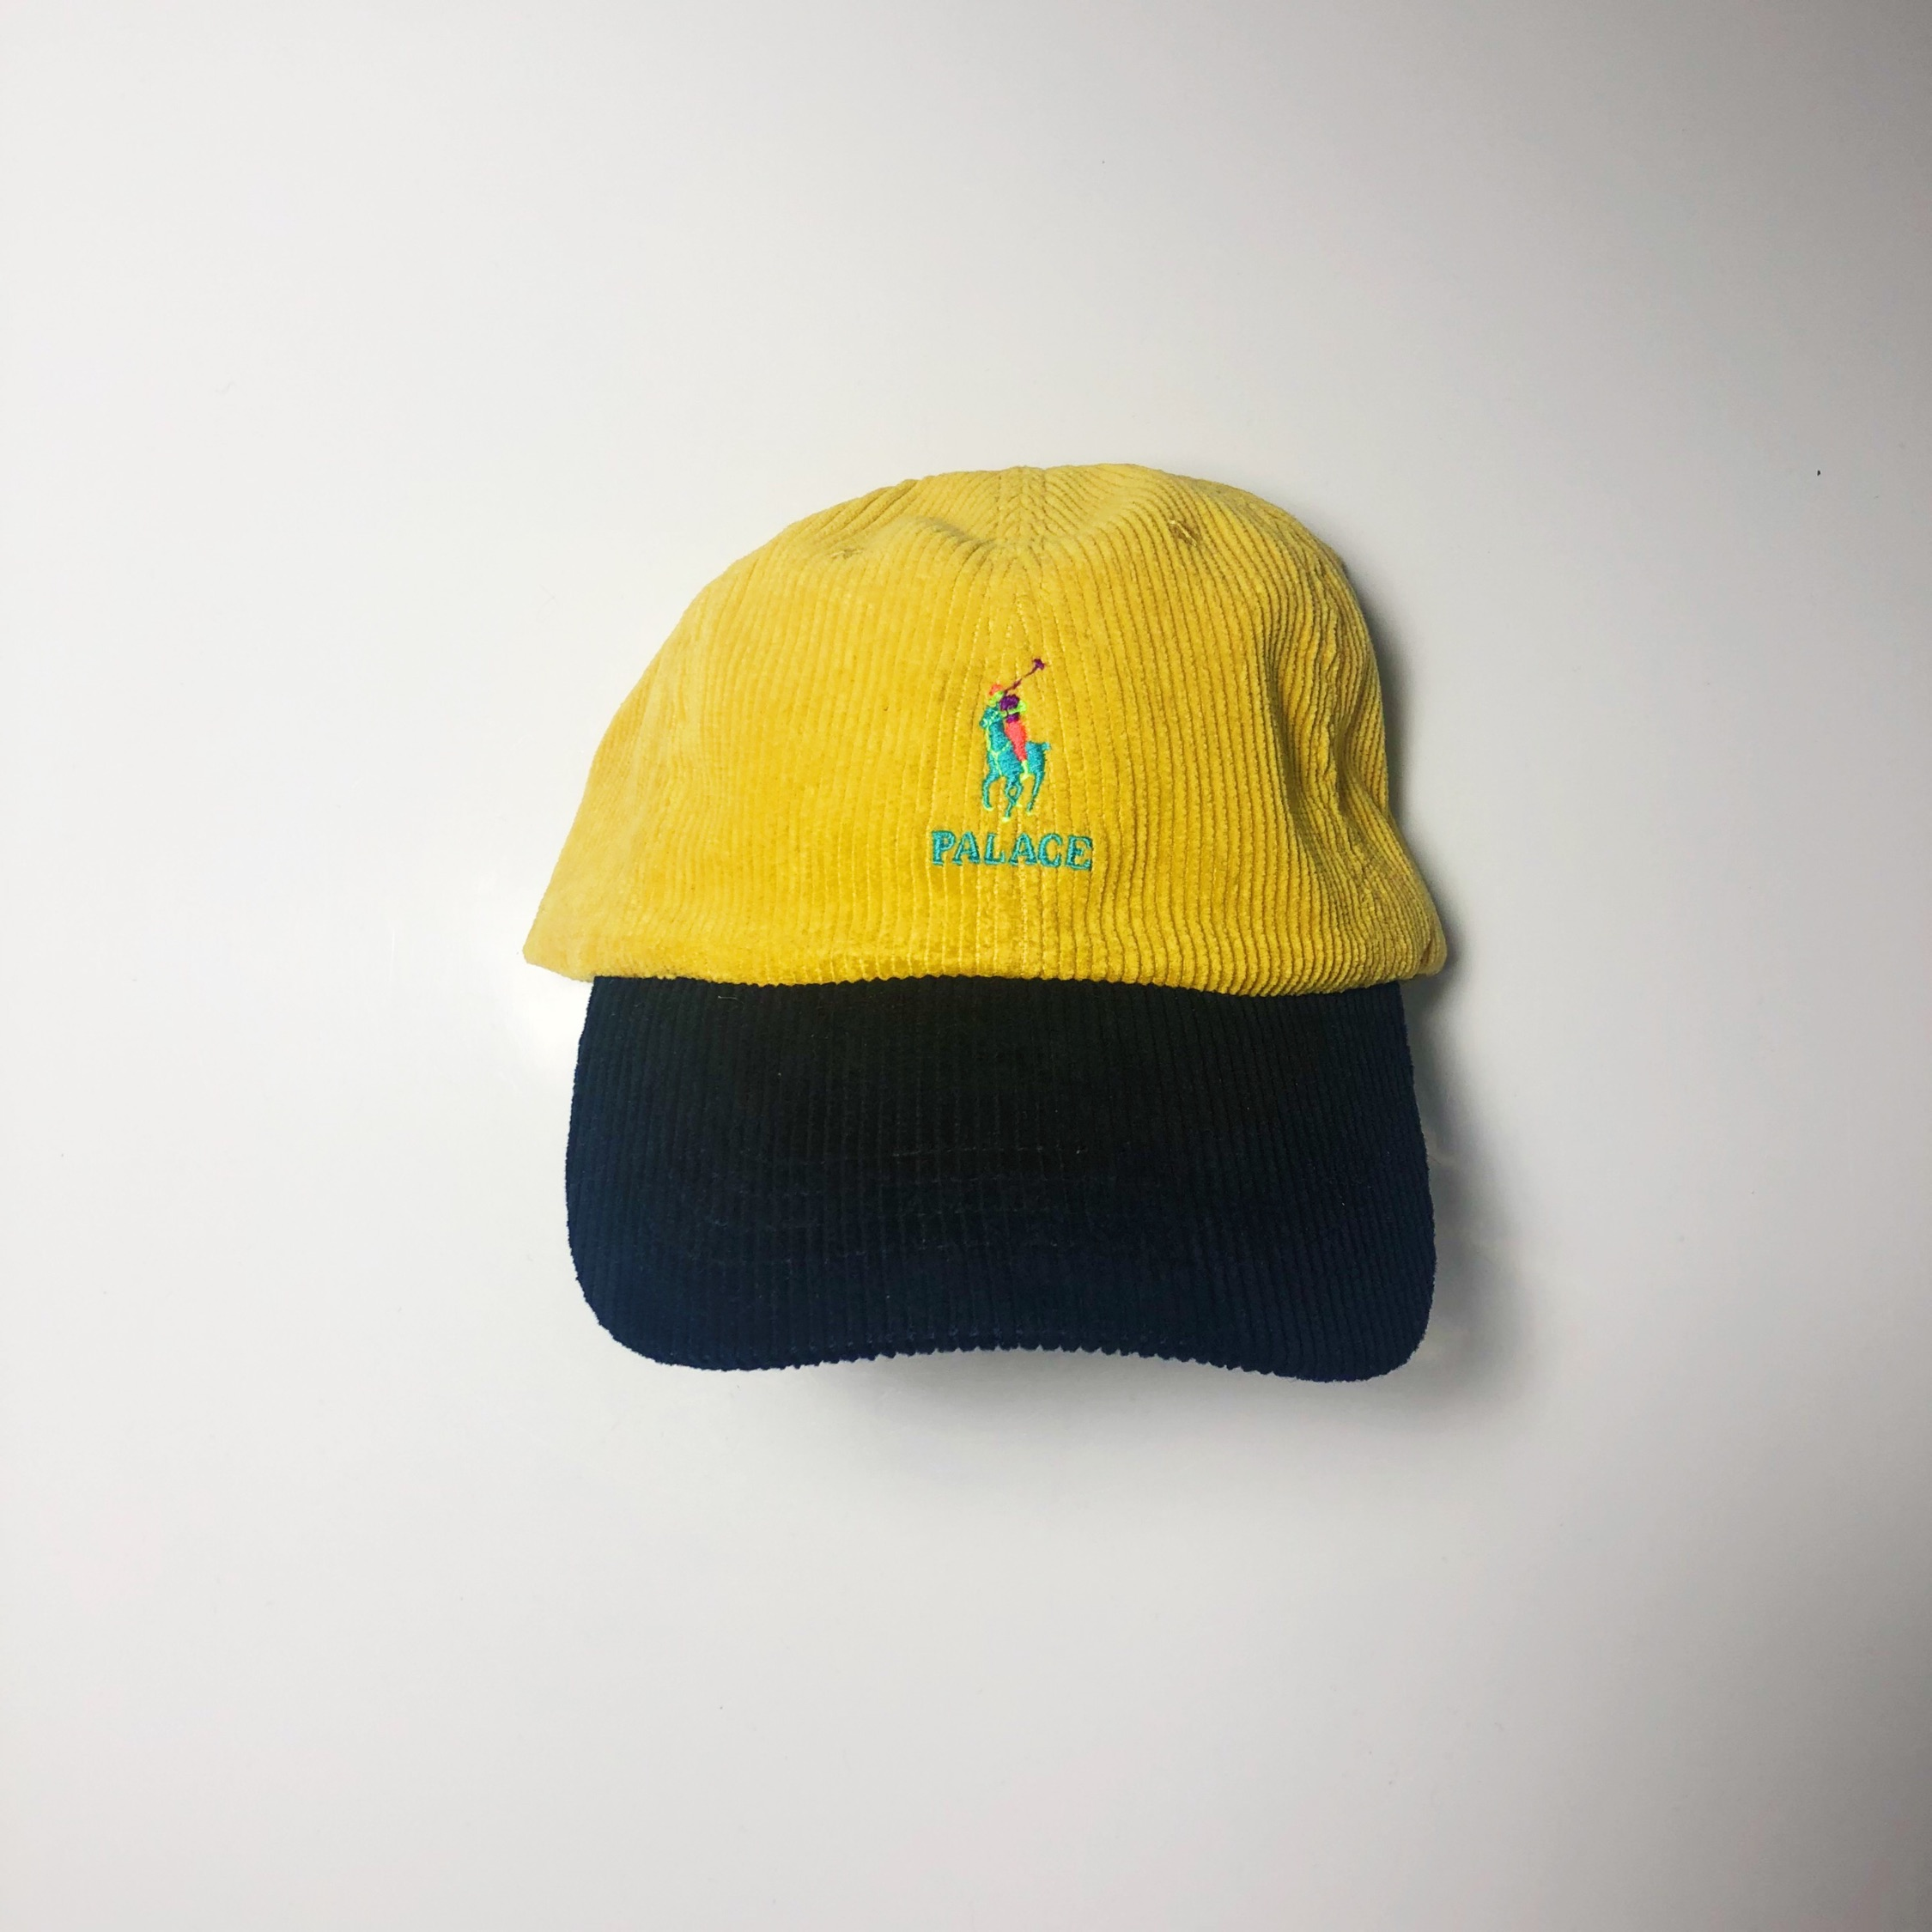 Palace Polo Ralph Lauren Corduroy Yellow Cap Hat